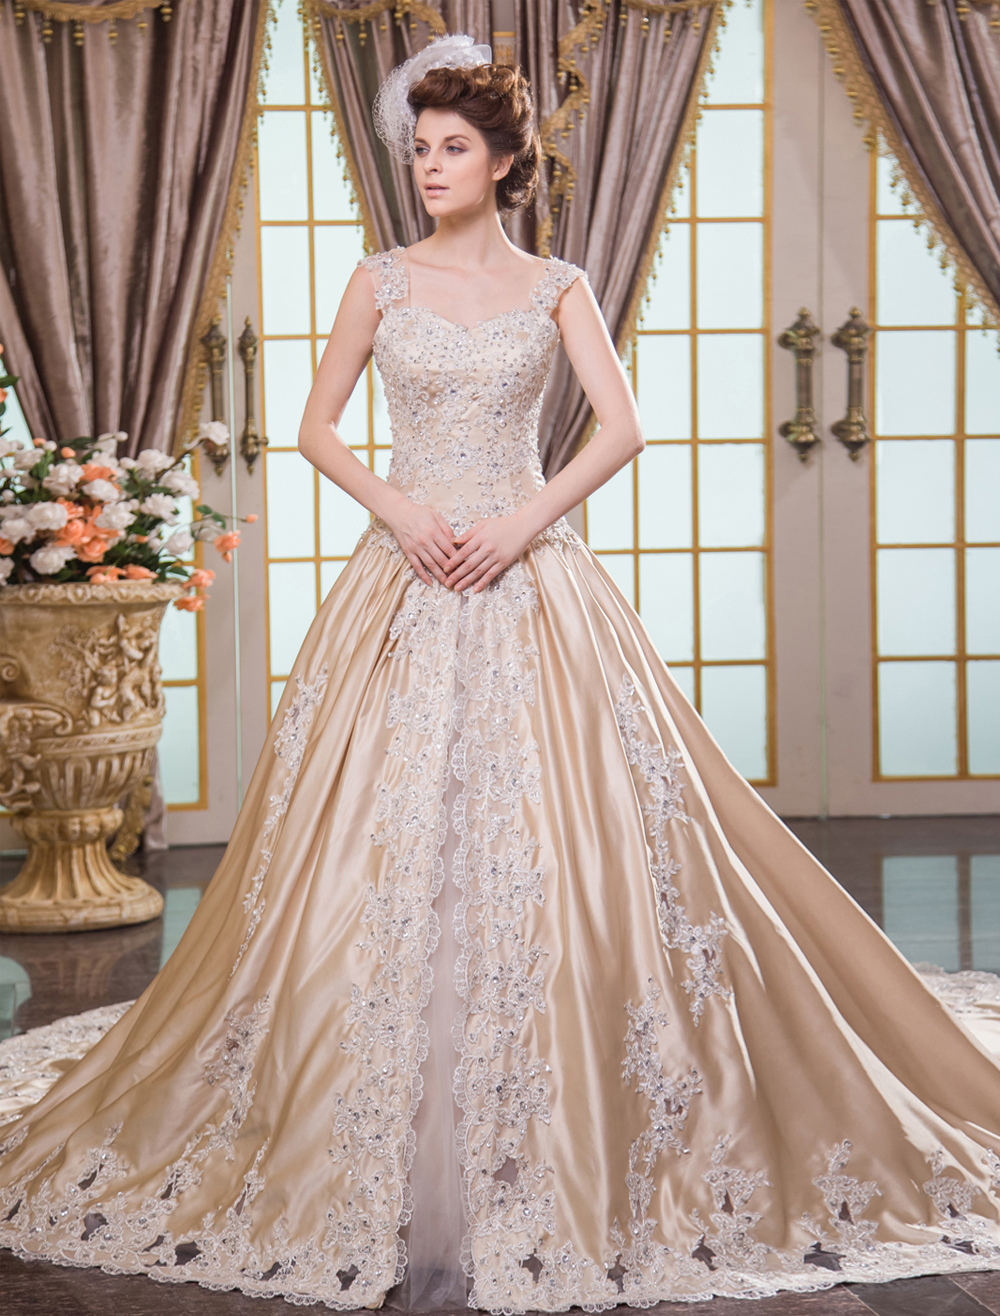 Champagne Ball Gown Lace-up Bridal Wedding Dress Milanoo - Milanoo.com